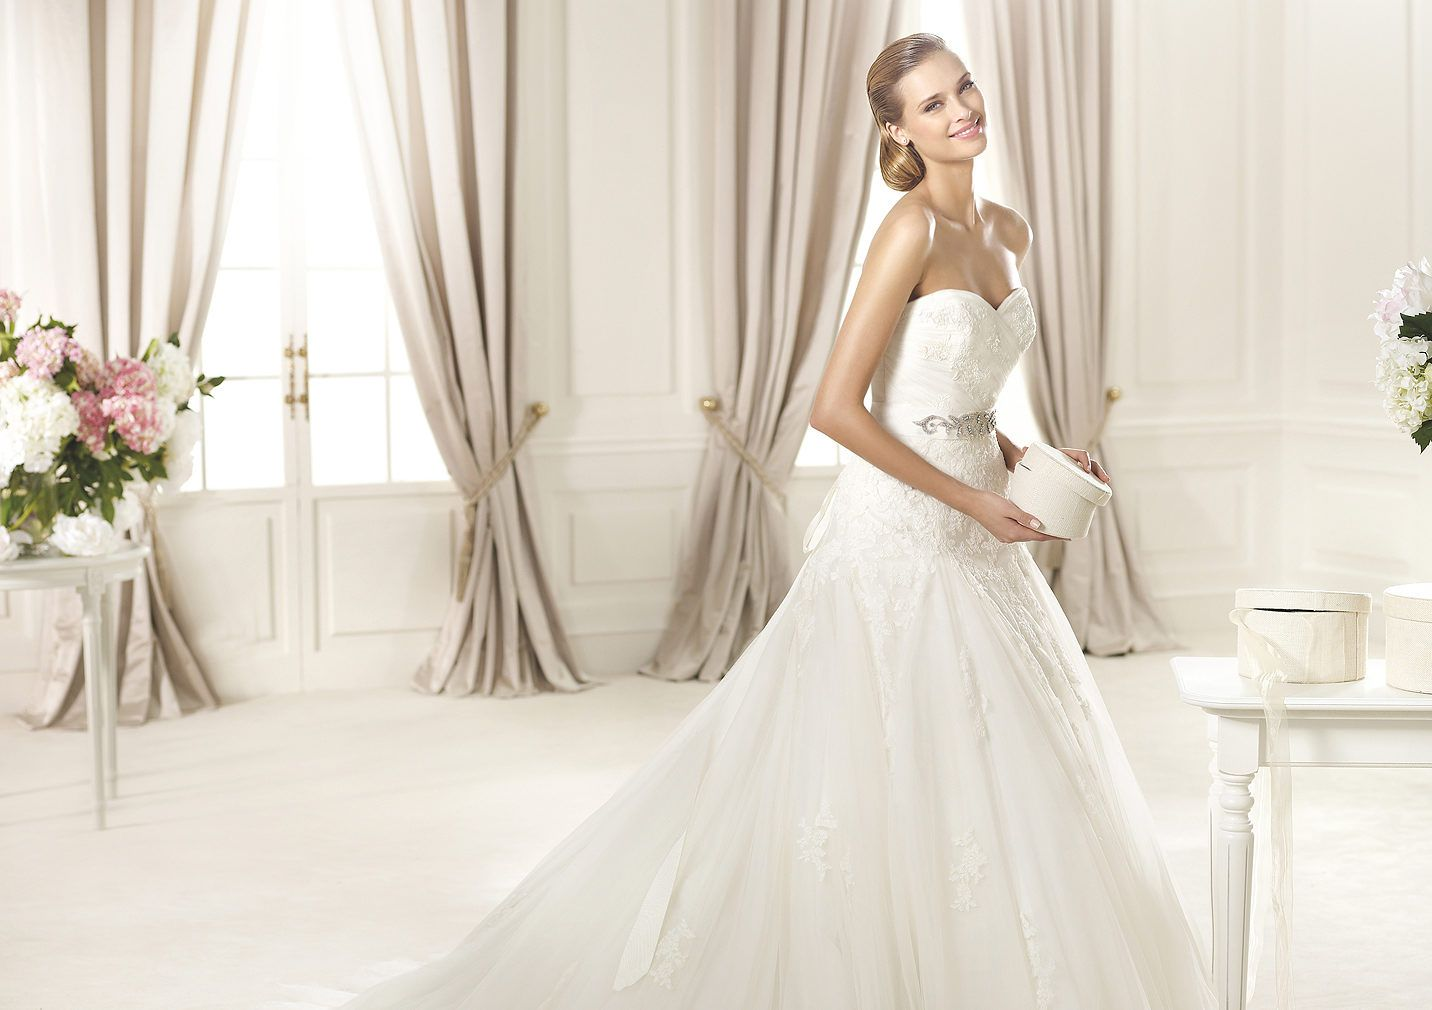 Pronovias Presents The Stunning 2018 Preview Collections: Lace Embellished Dress. Collection 2015 GLAMOUR